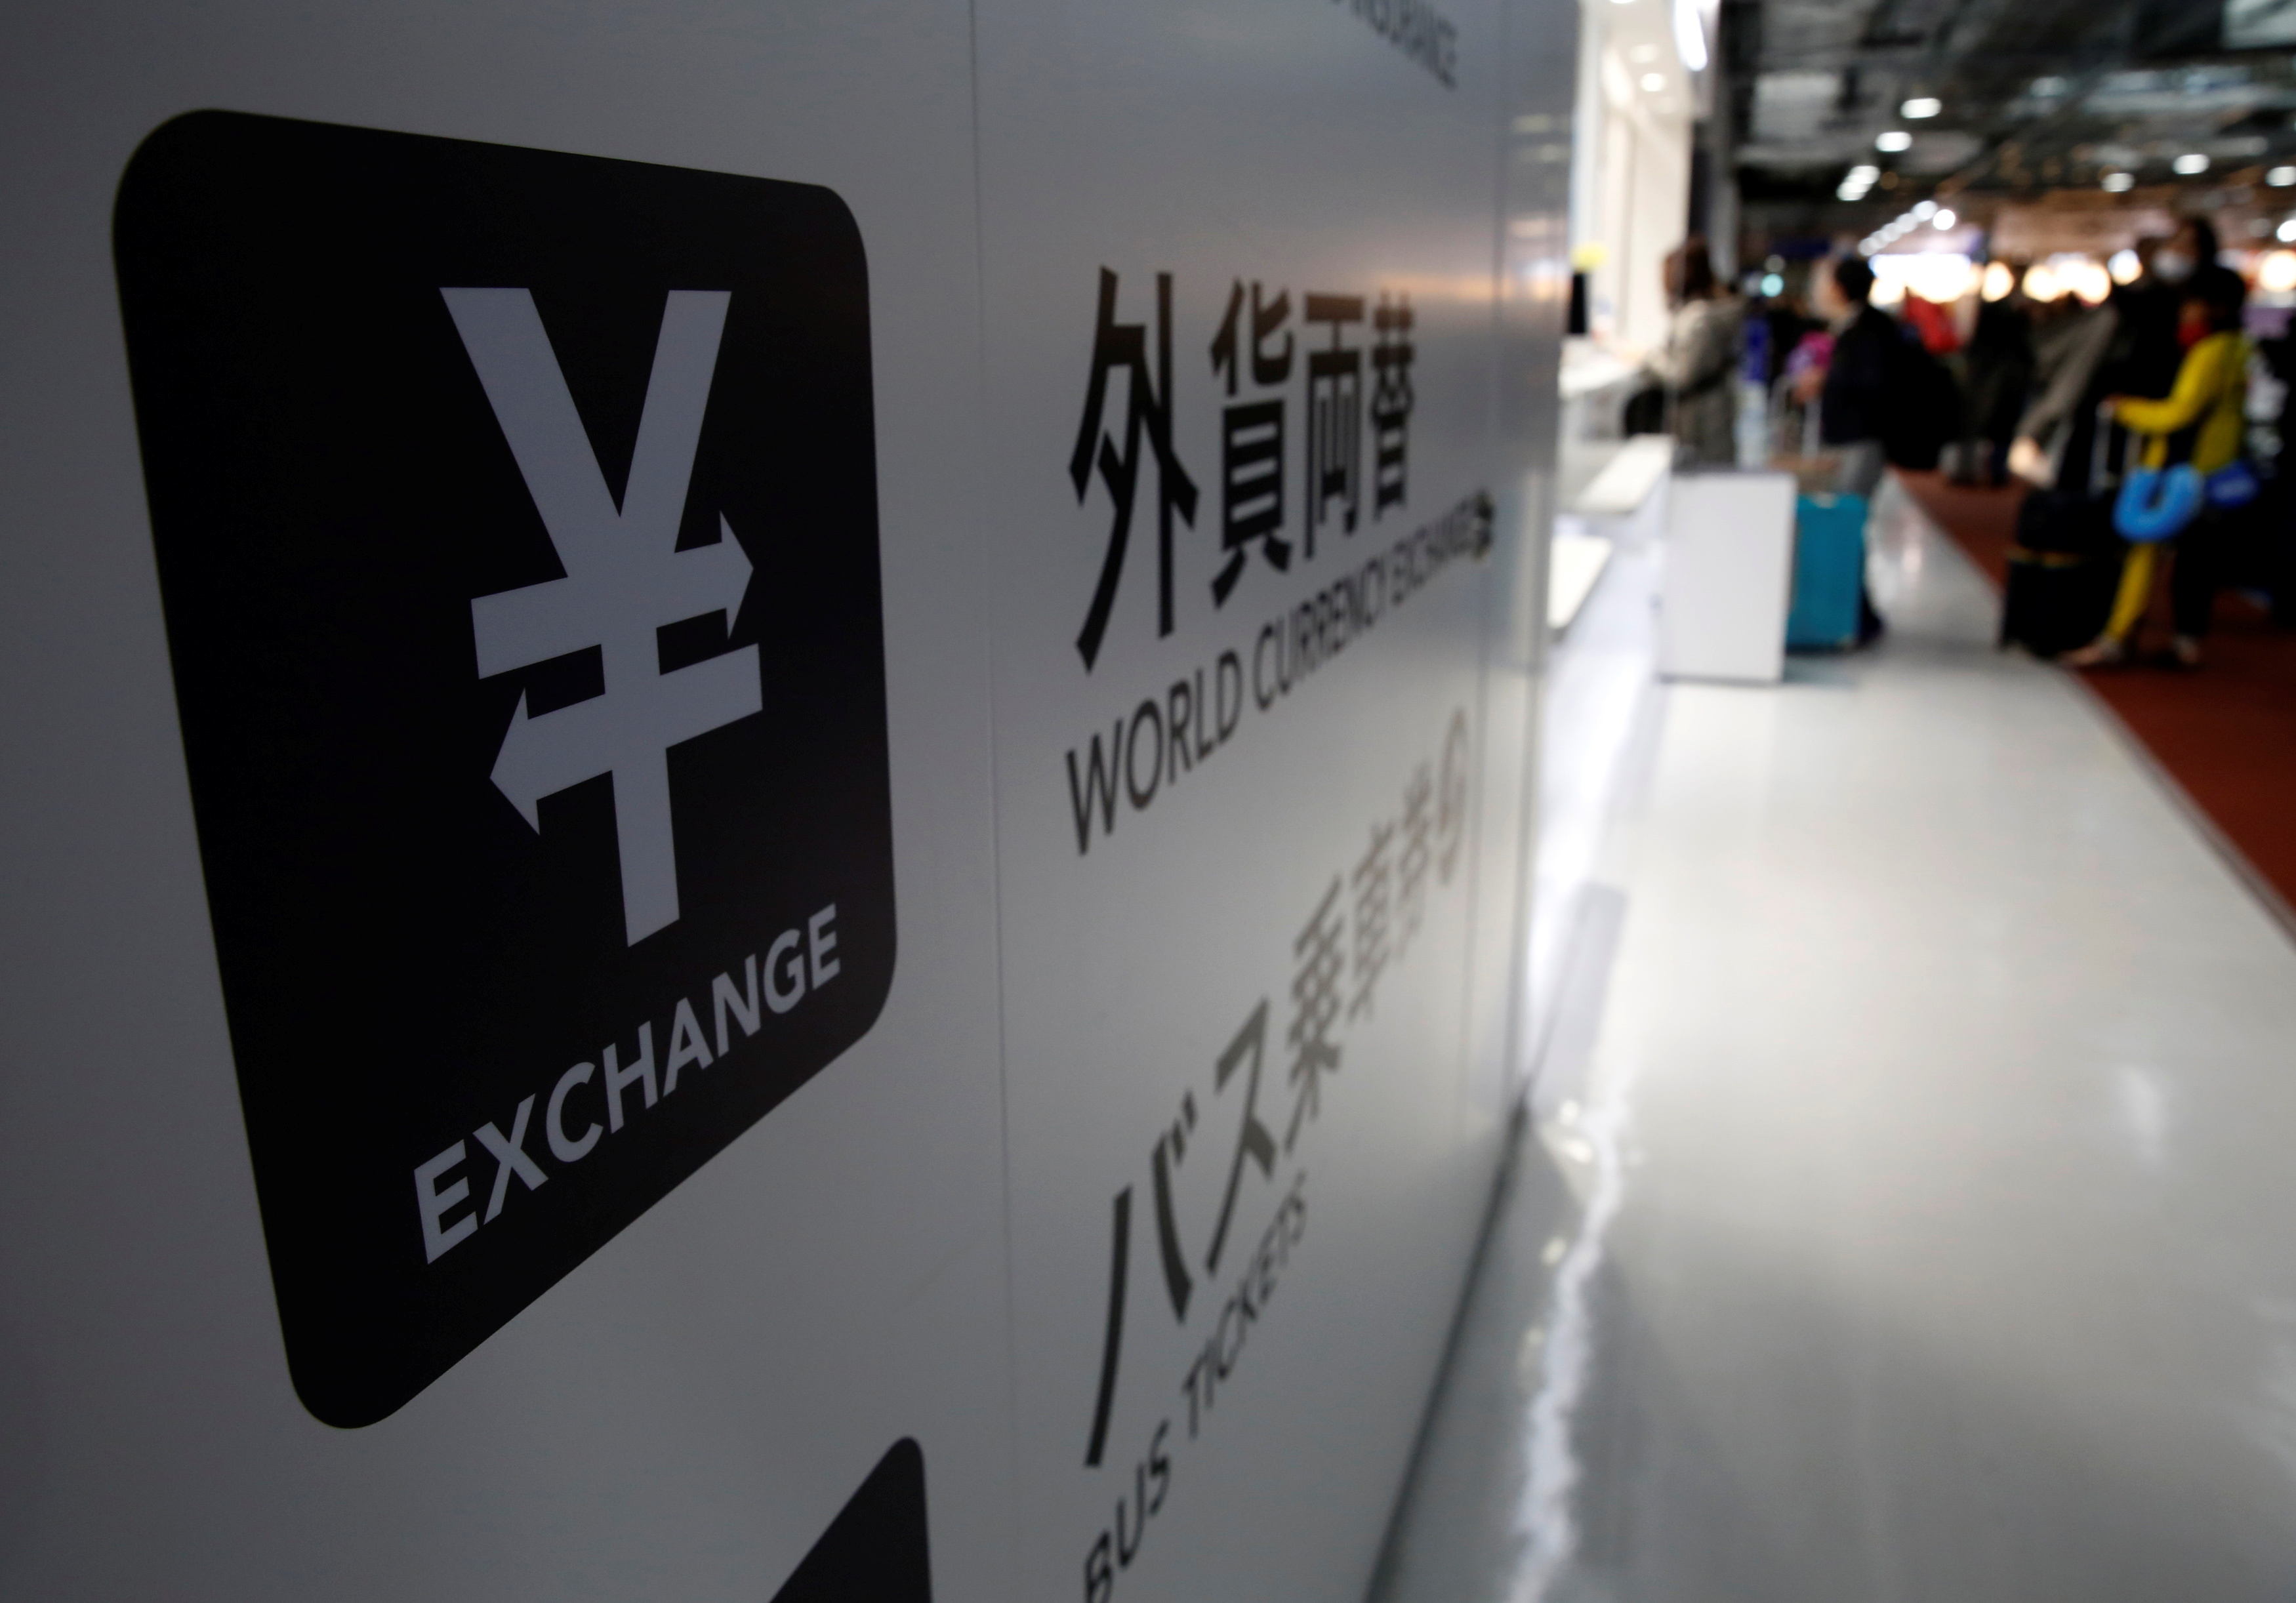 A Japanese yen currency sign (L) is seen at a currency exchange office as people line up to exchange money at Narita International airport, near Tokyo, Japan, March 25, 2016. REUTERS/Yuya Shino/File Photo